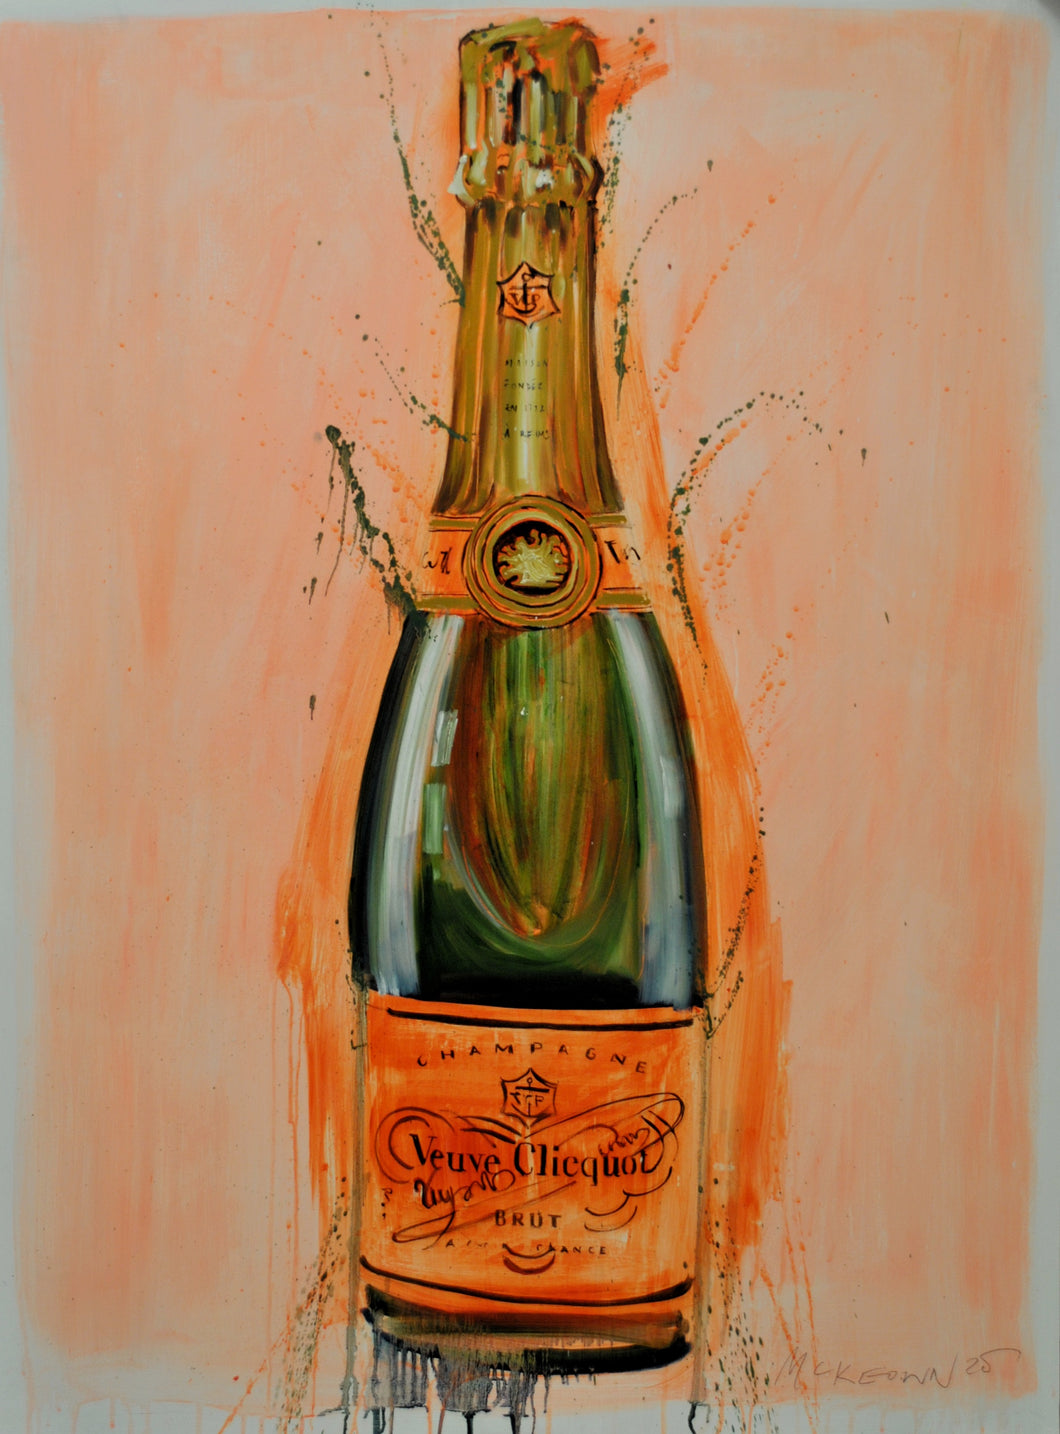 Veuve Clicquot - Orange